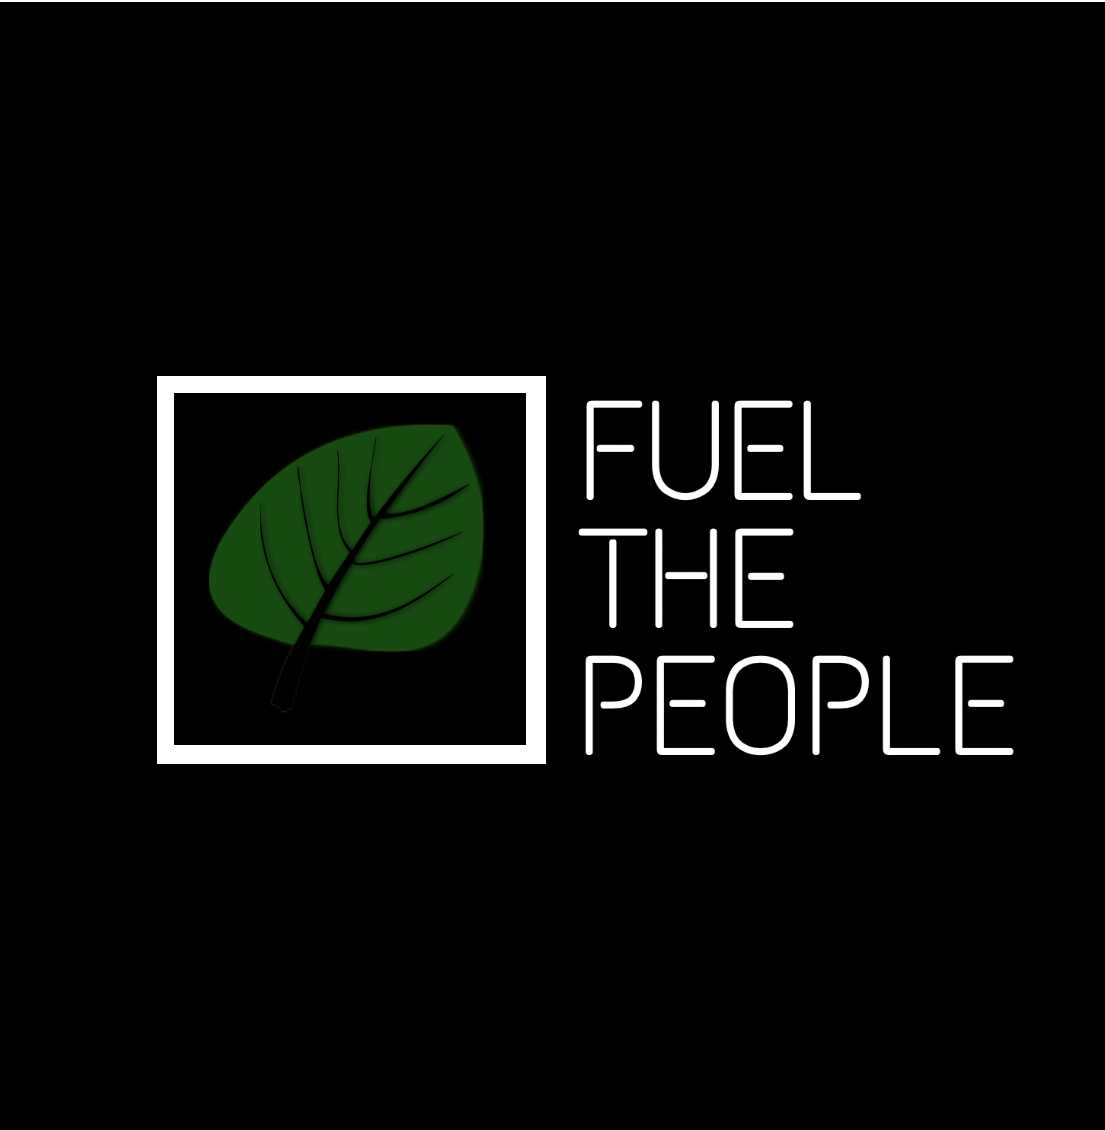 Fuel the People